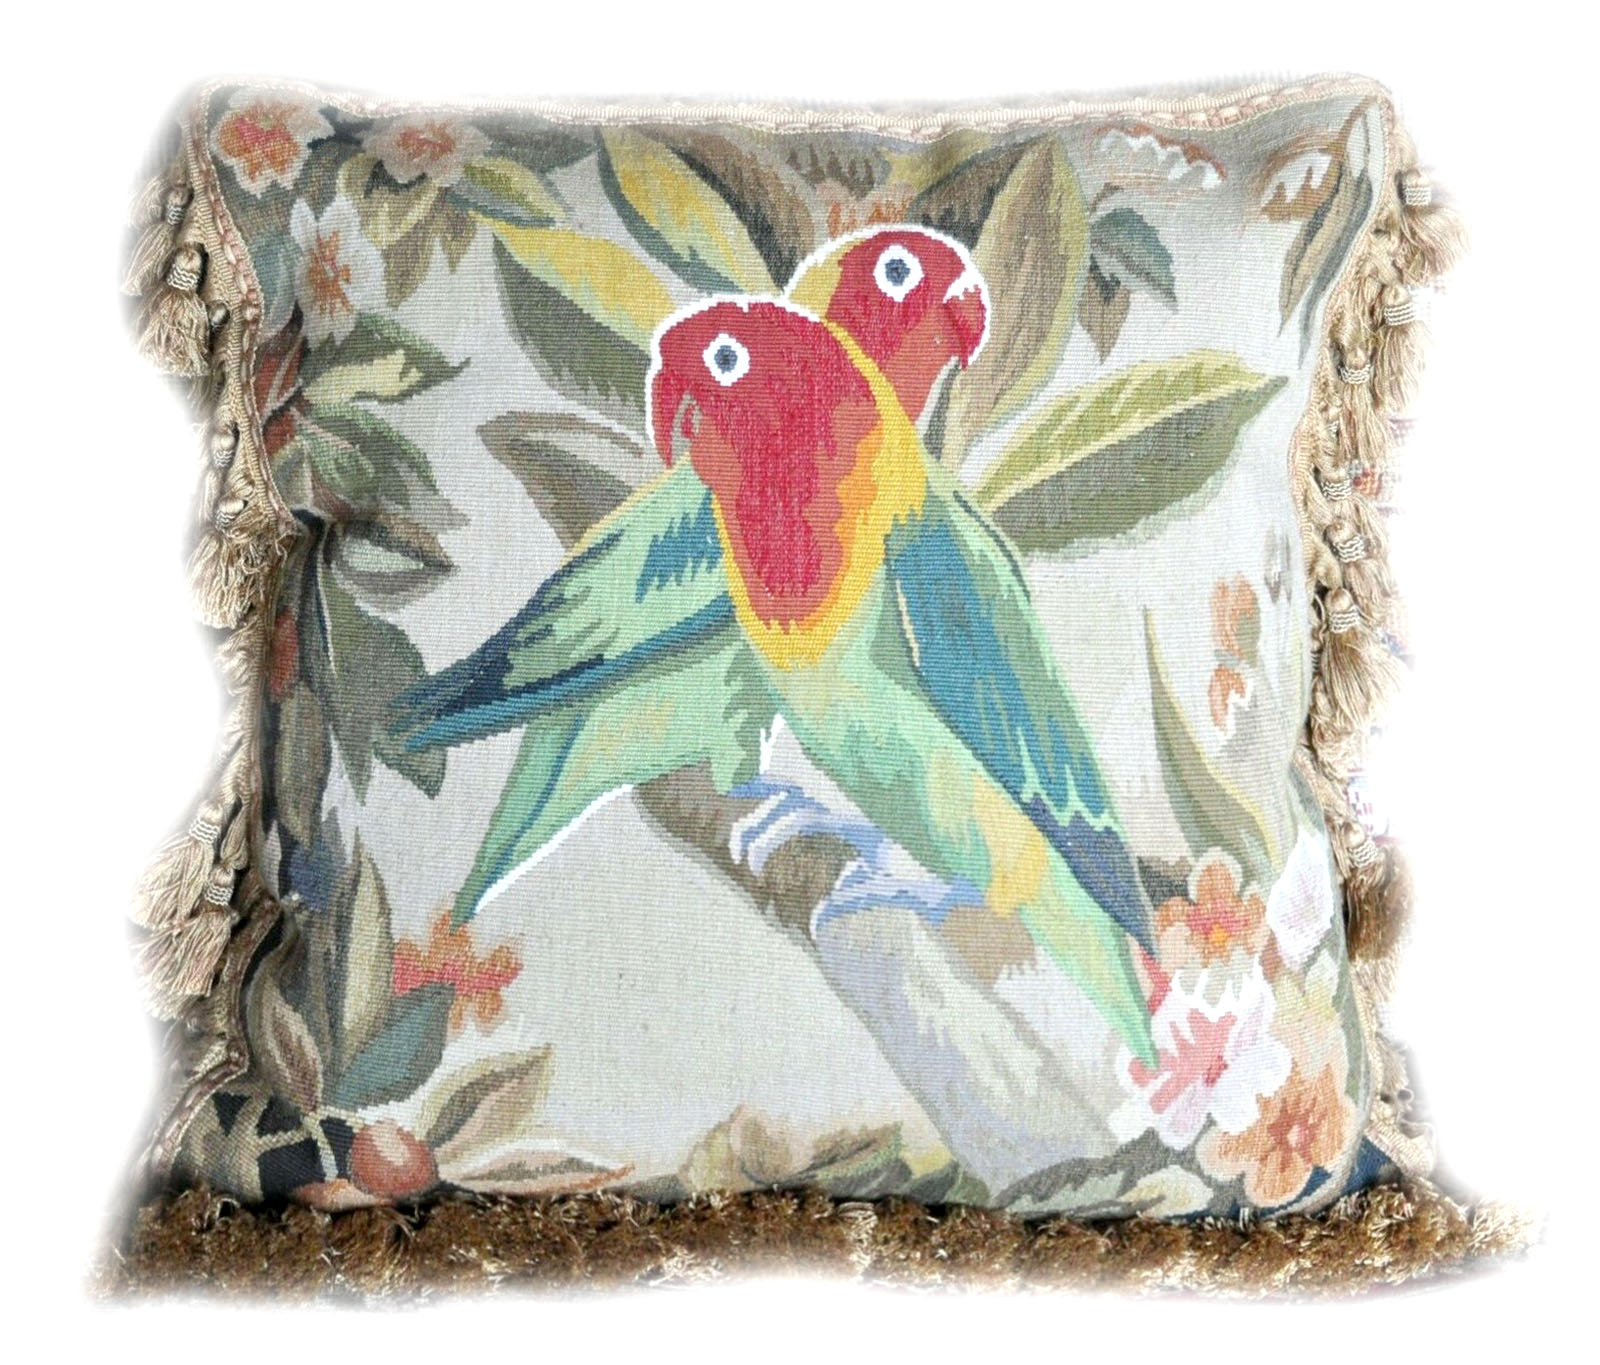 18 x 18 Handmade French Gobelins Tapestry Weave Wool and Silk Bird Parrot Aubusson Cushion Cover Pillow Case 12980037 (1)